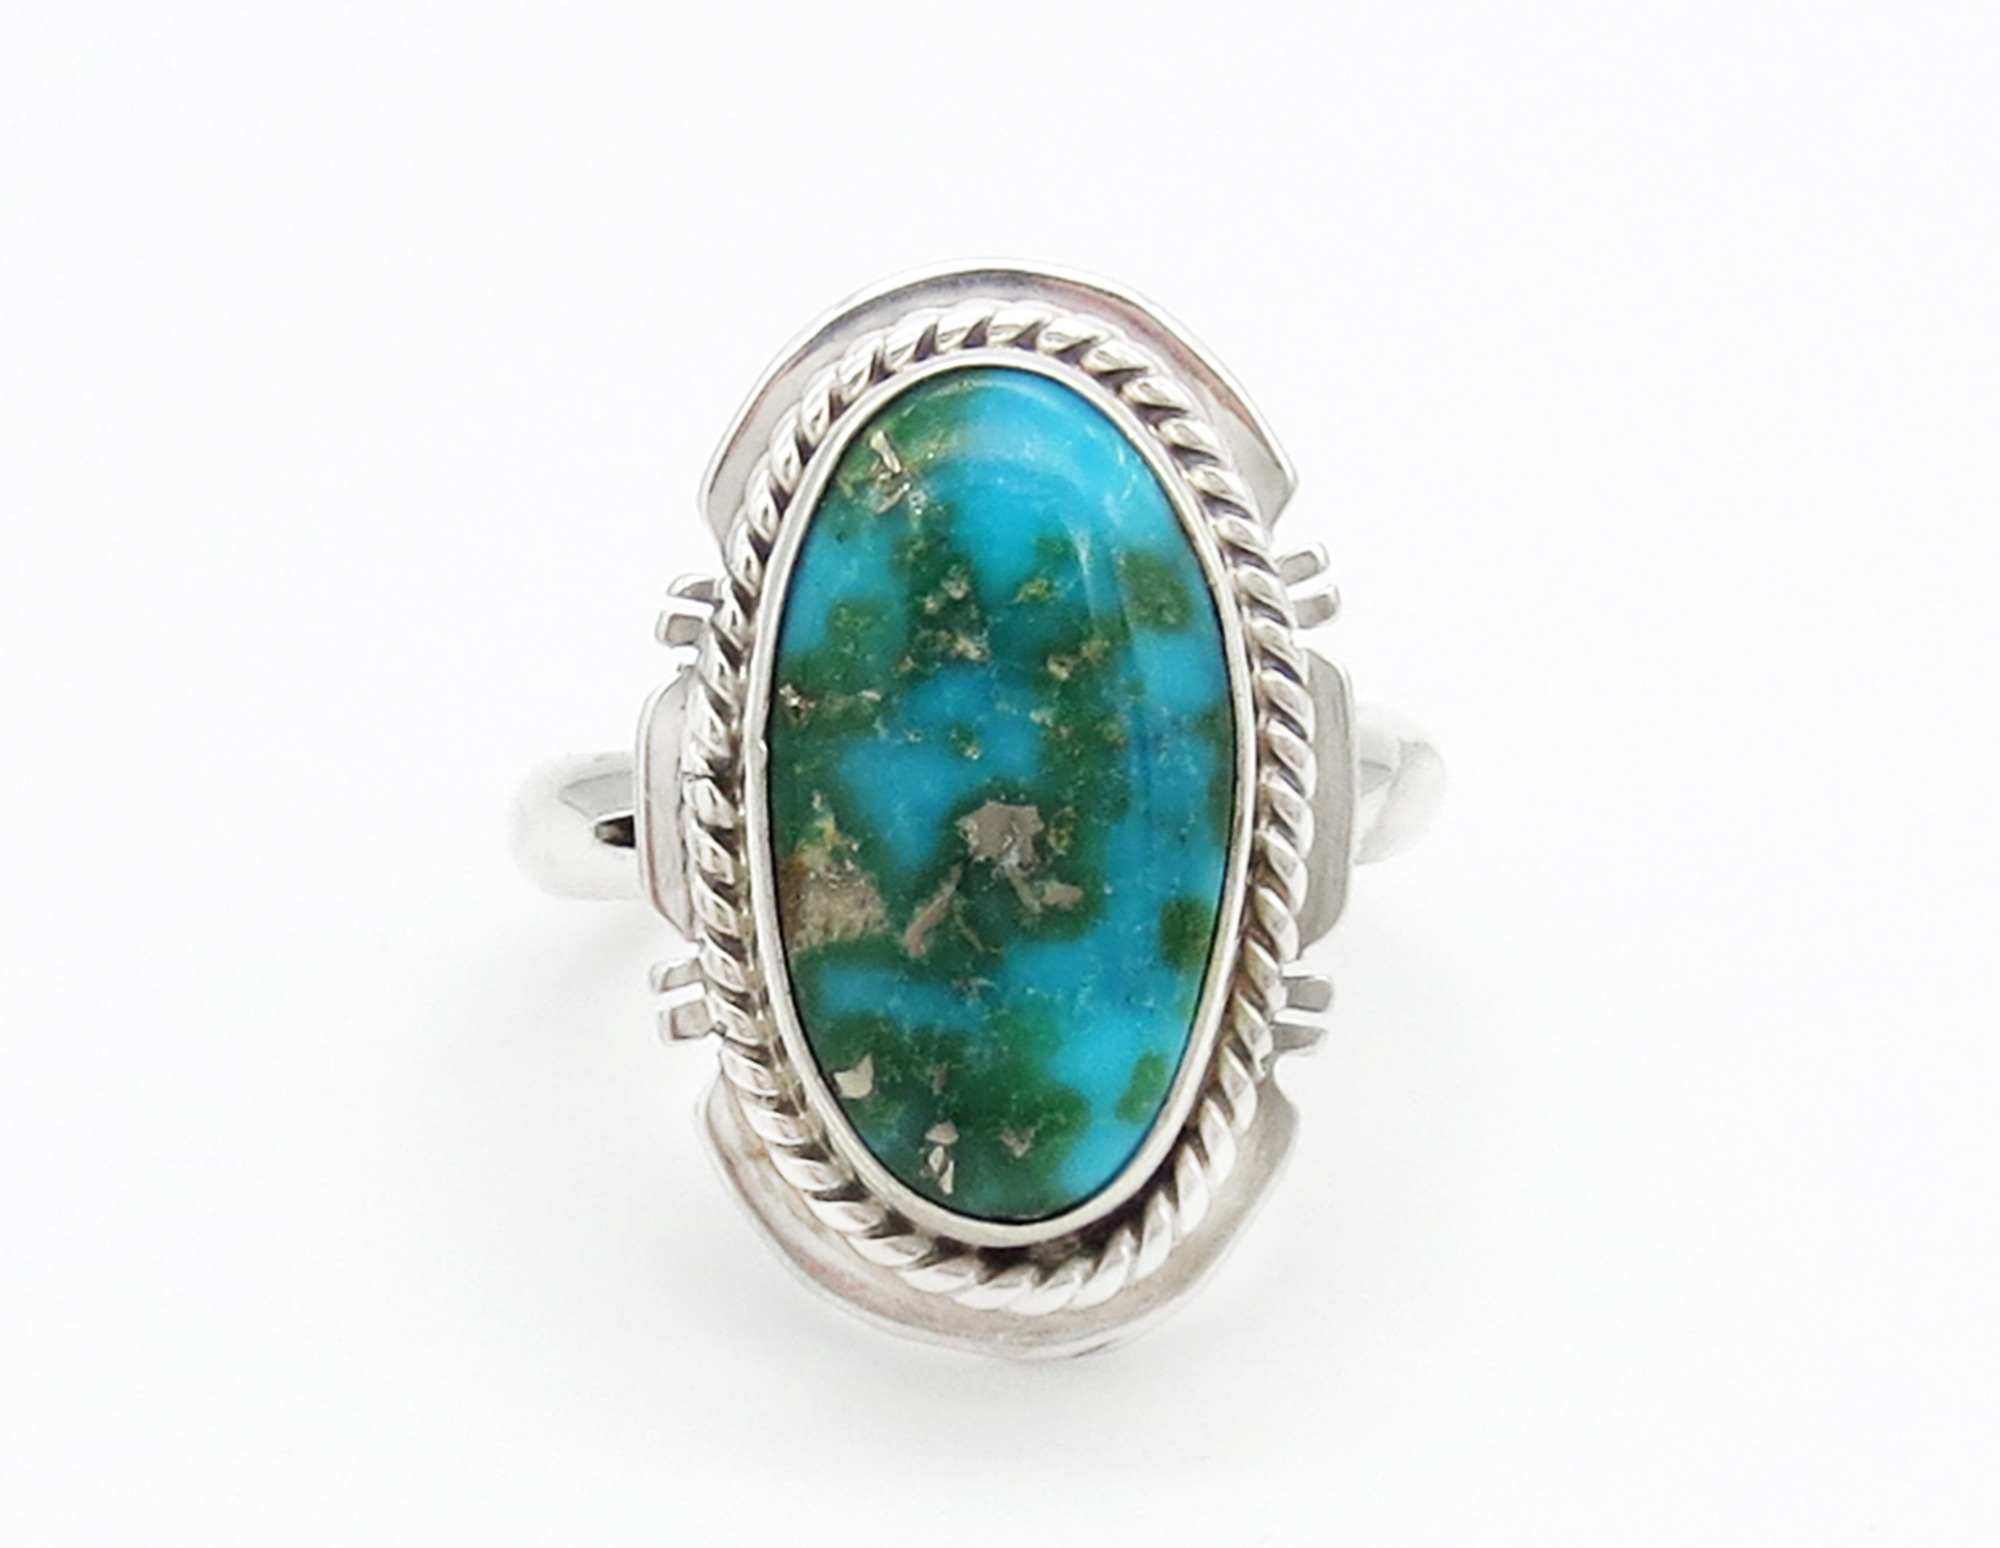 Sonoran Turquoise & Sterling Silver Ring Sz 7 Navajo Jewelry - 6251sn